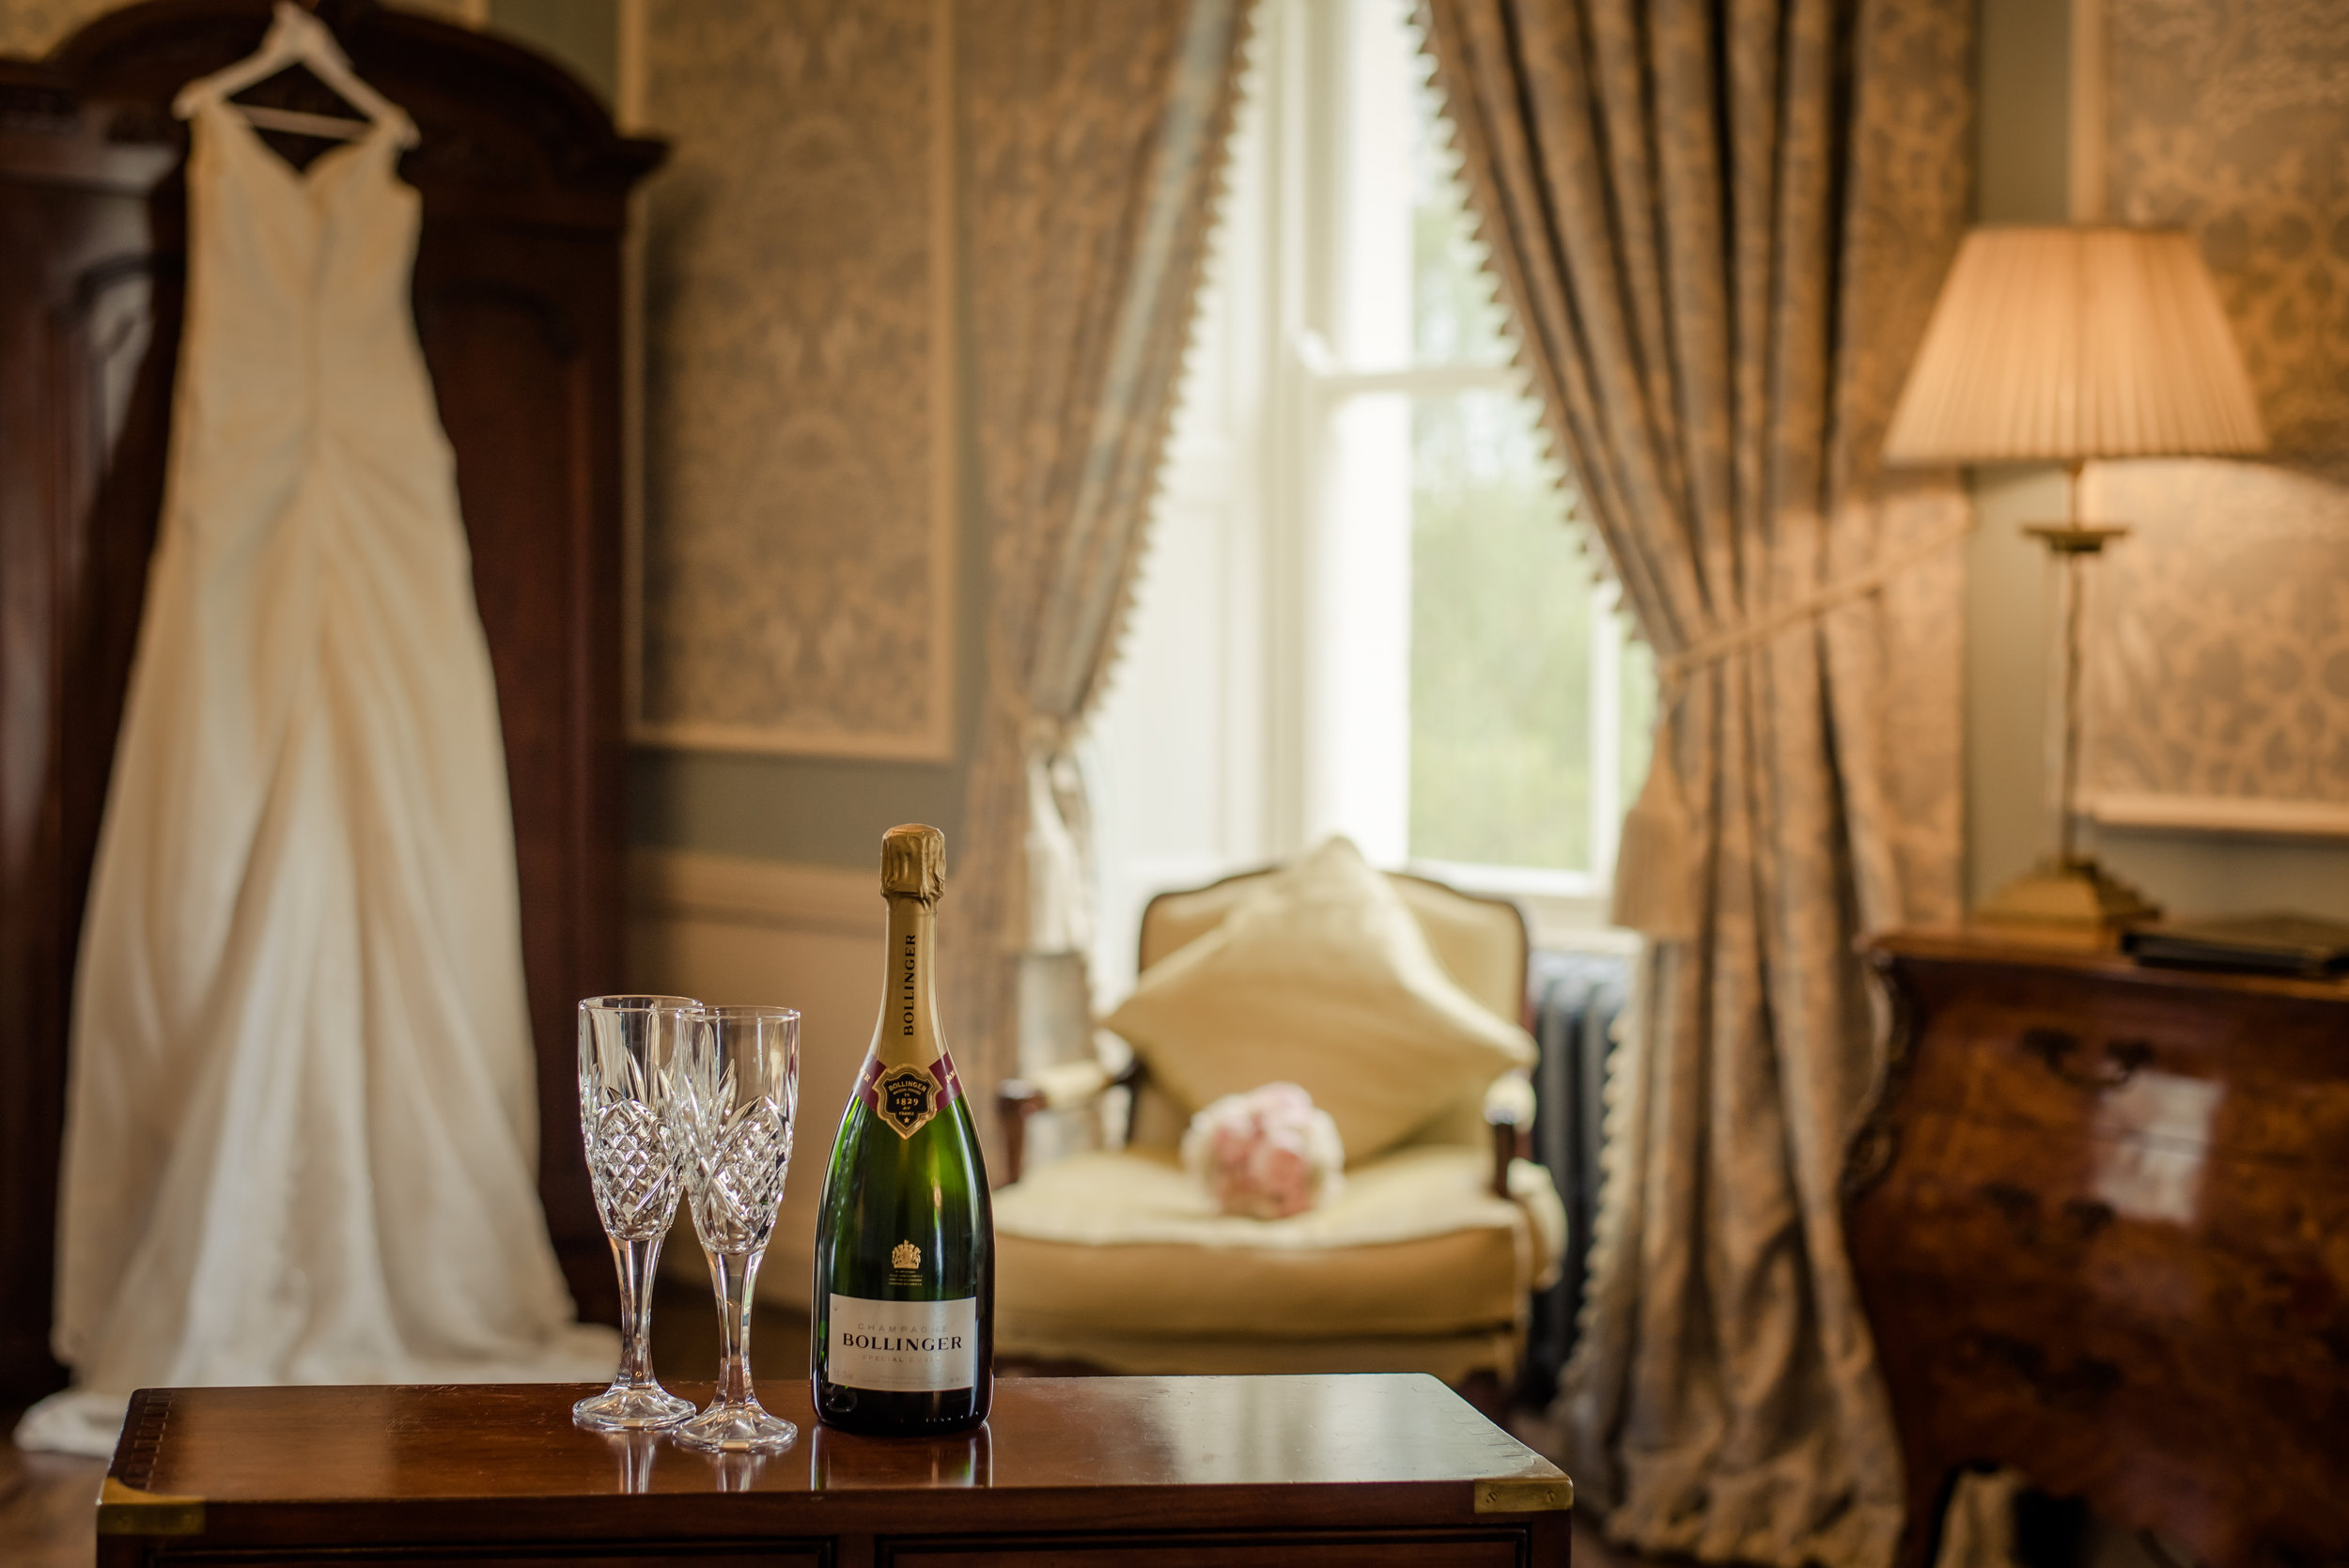 Tulfarris Hotel & Golf Resort bridal suite with champagne and wedding dress in the background.jpg